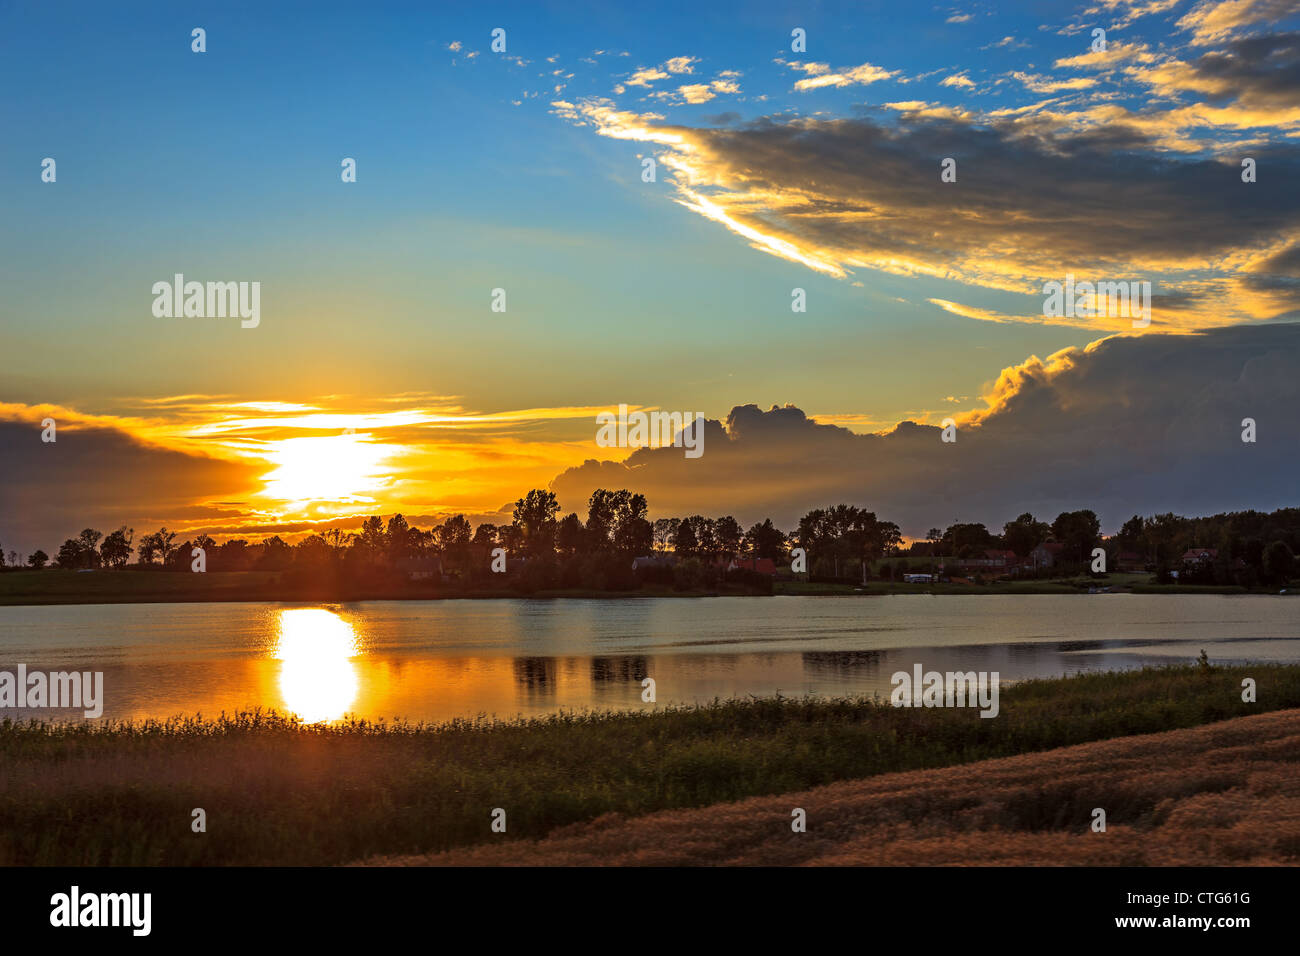 Lake Landscape with sunset reflections on the surface of water. - Stock Image